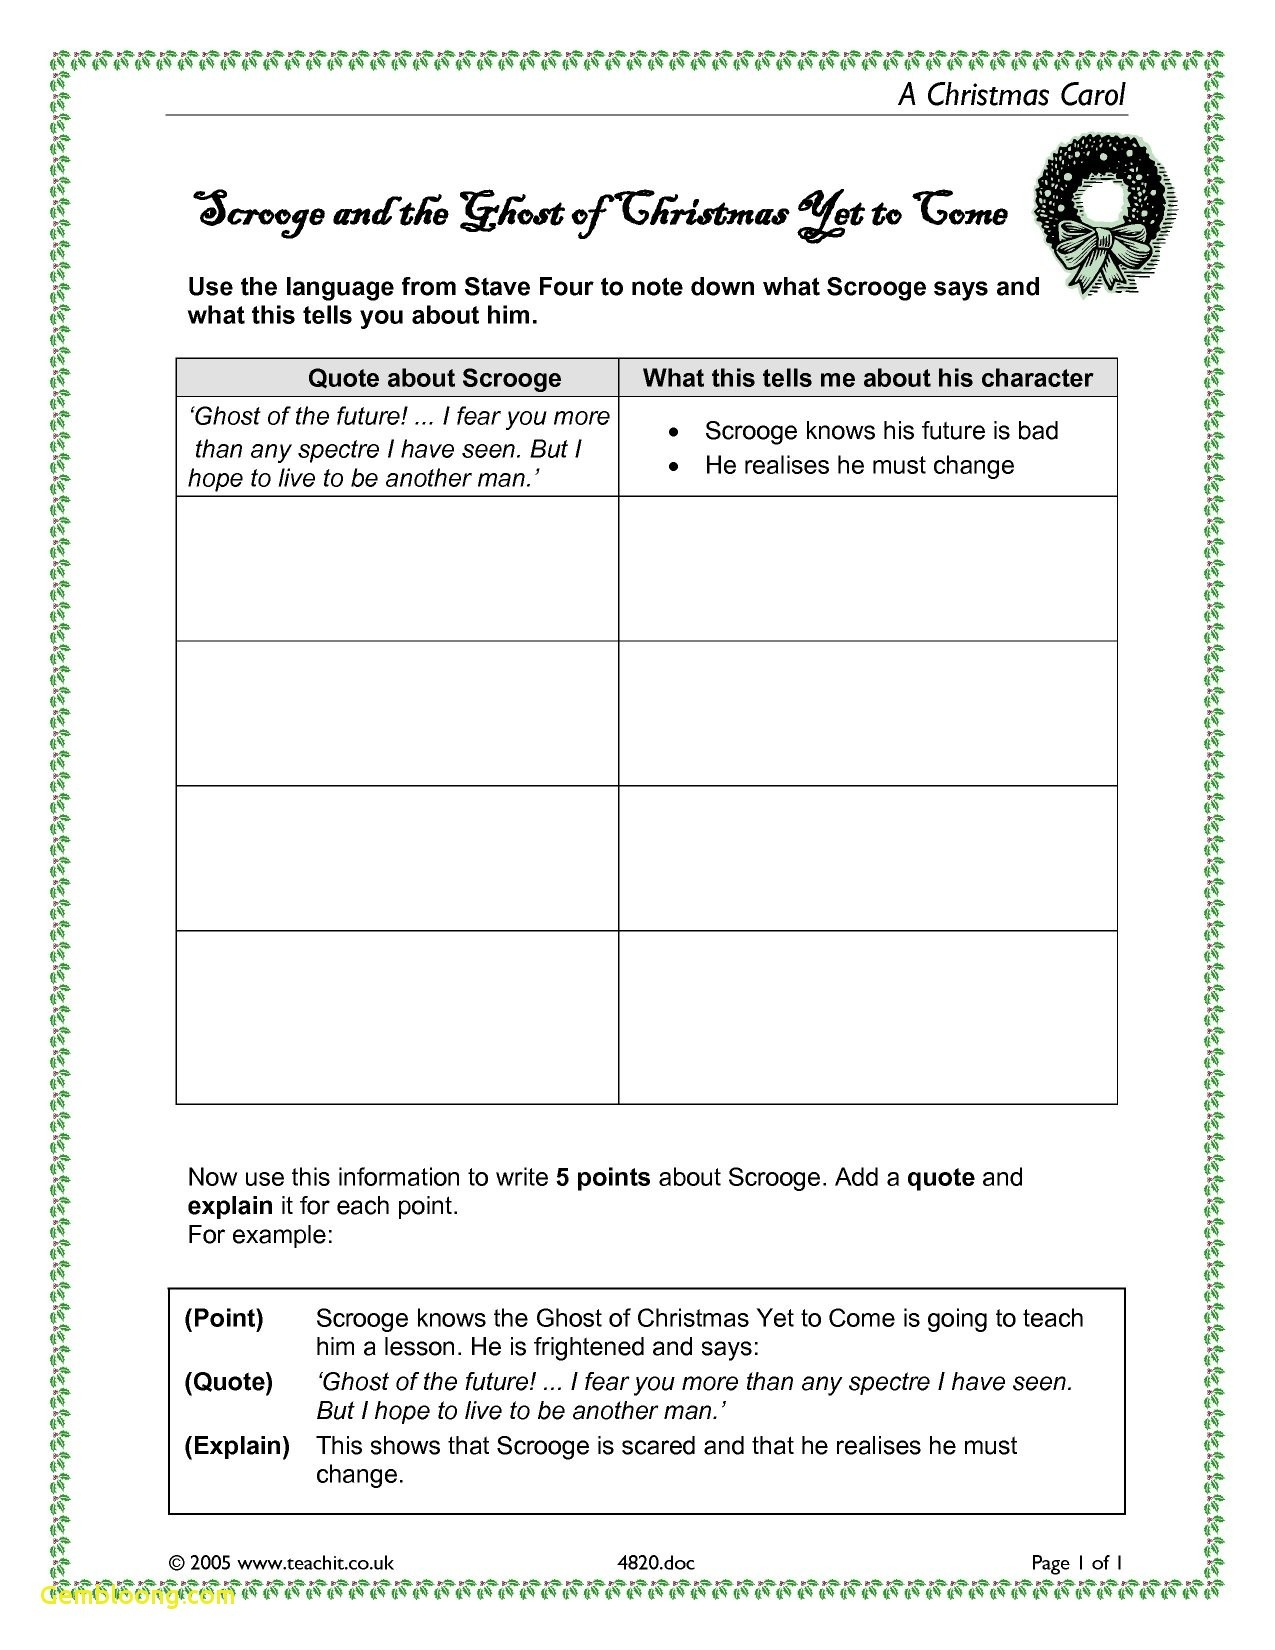 Irs Letter Template - Letter to the Irs Template Luxury Writing A Letter to the Irs